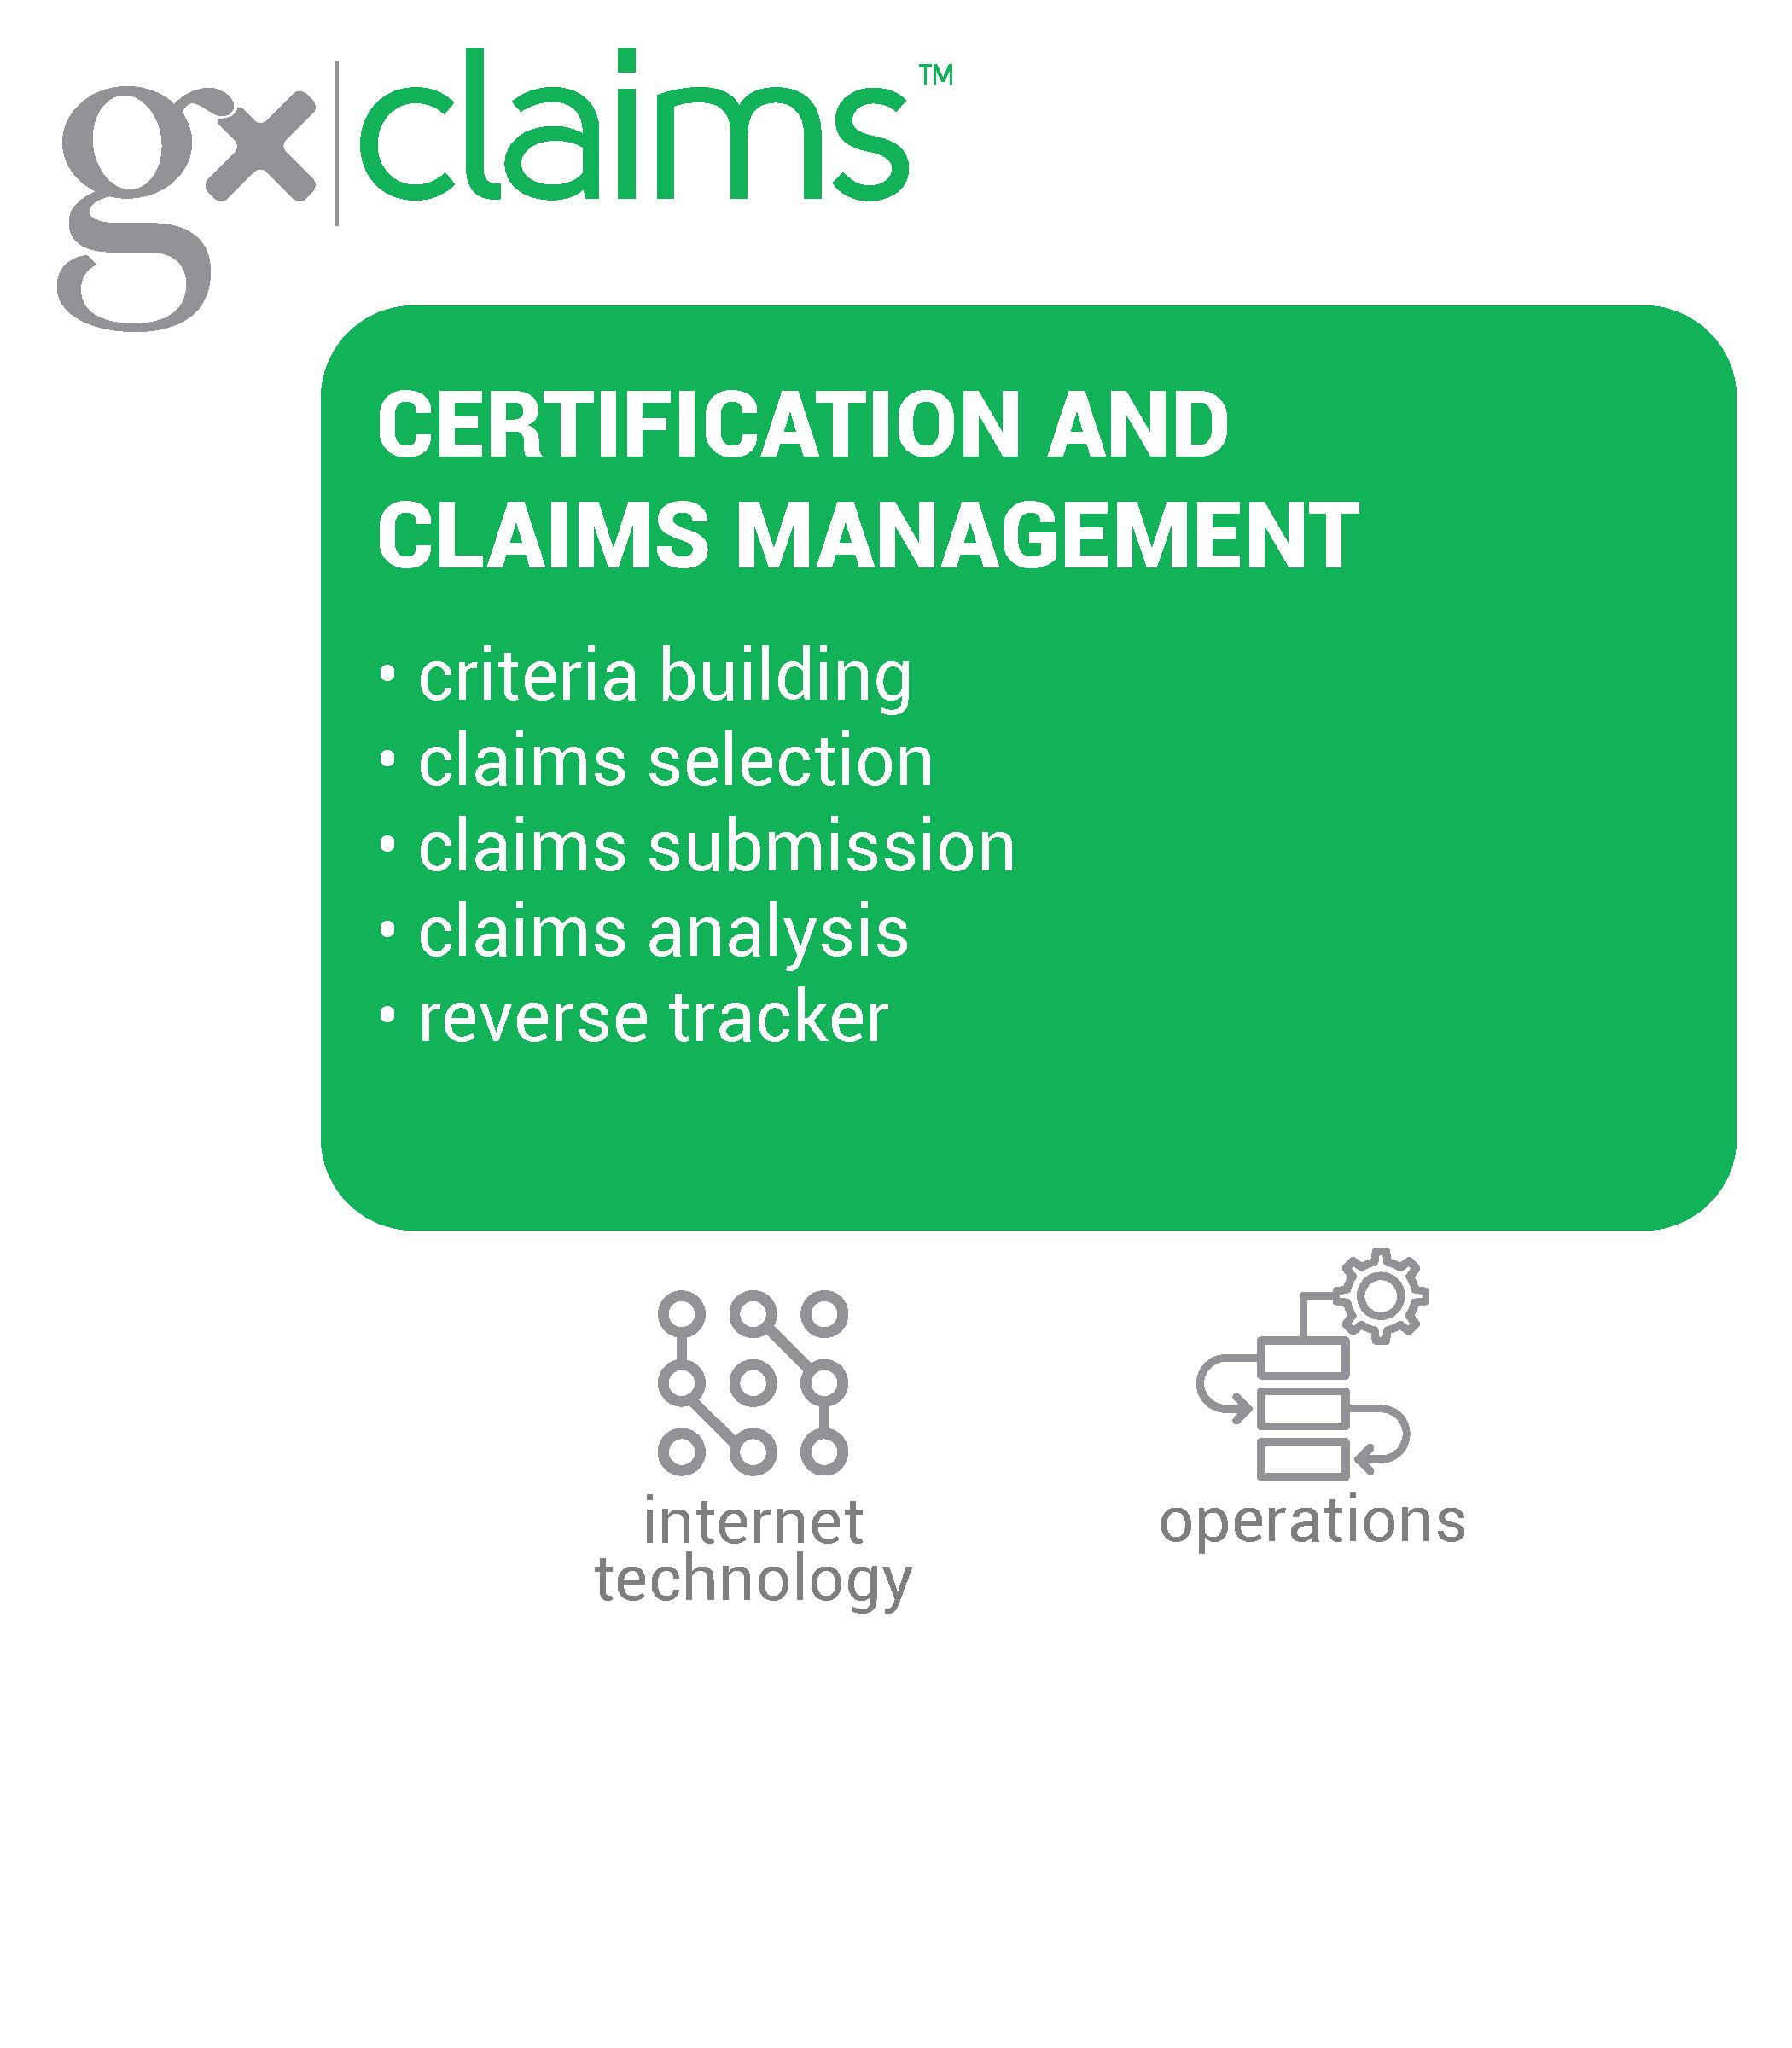 GxClaims Diagram